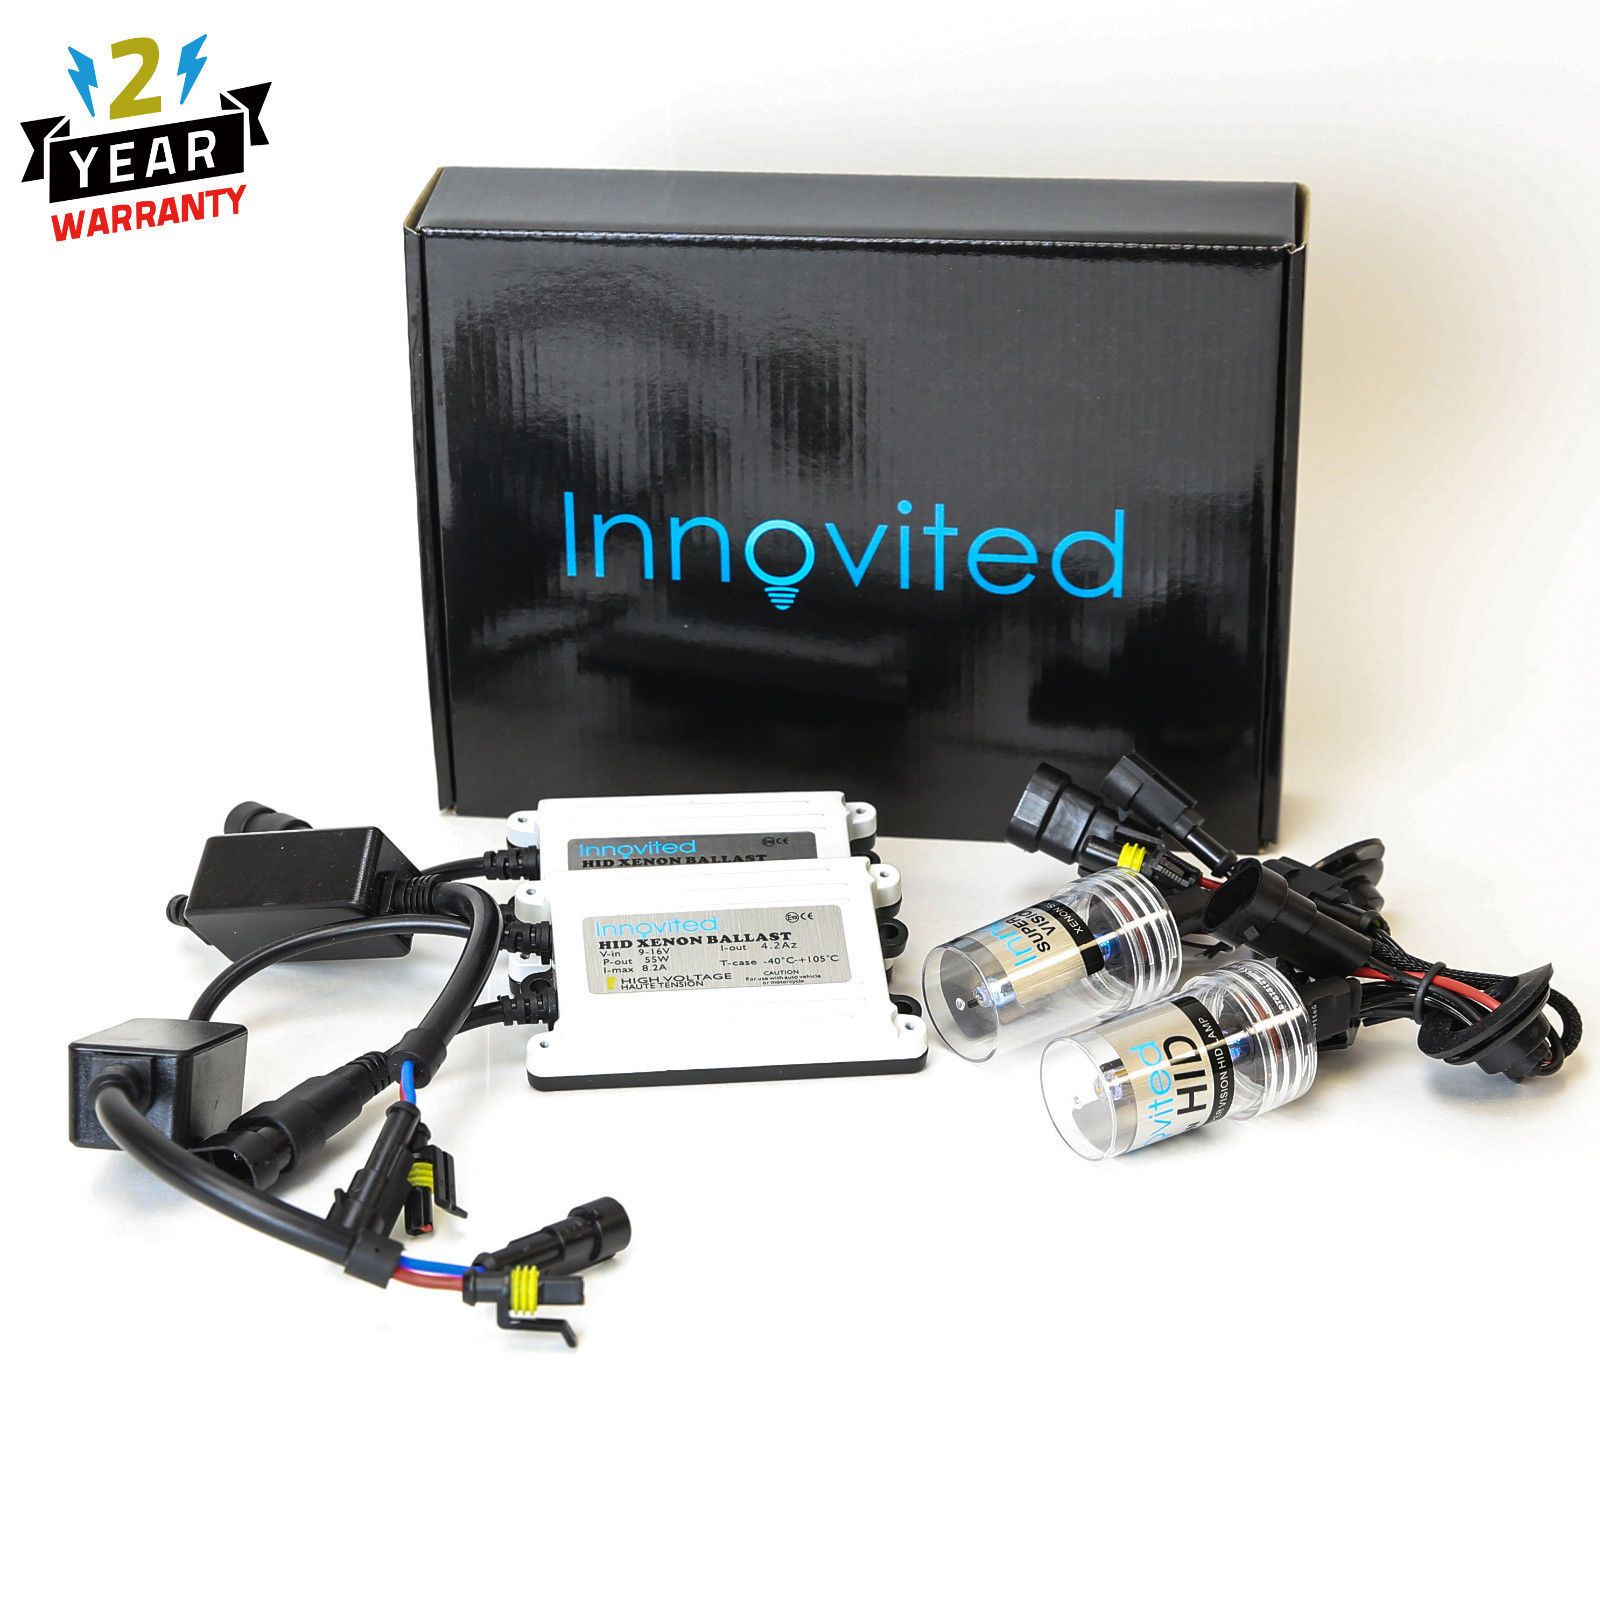 http motorcyclespareparts net innovited ac 55w hid kit h4 h7 h11 h13 9003 9005 9006 9007 6000k hi lo bi xenon innovited ac 55w hid kit h4 h7 h11 h13 9003  [ 1600 x 1600 Pixel ]